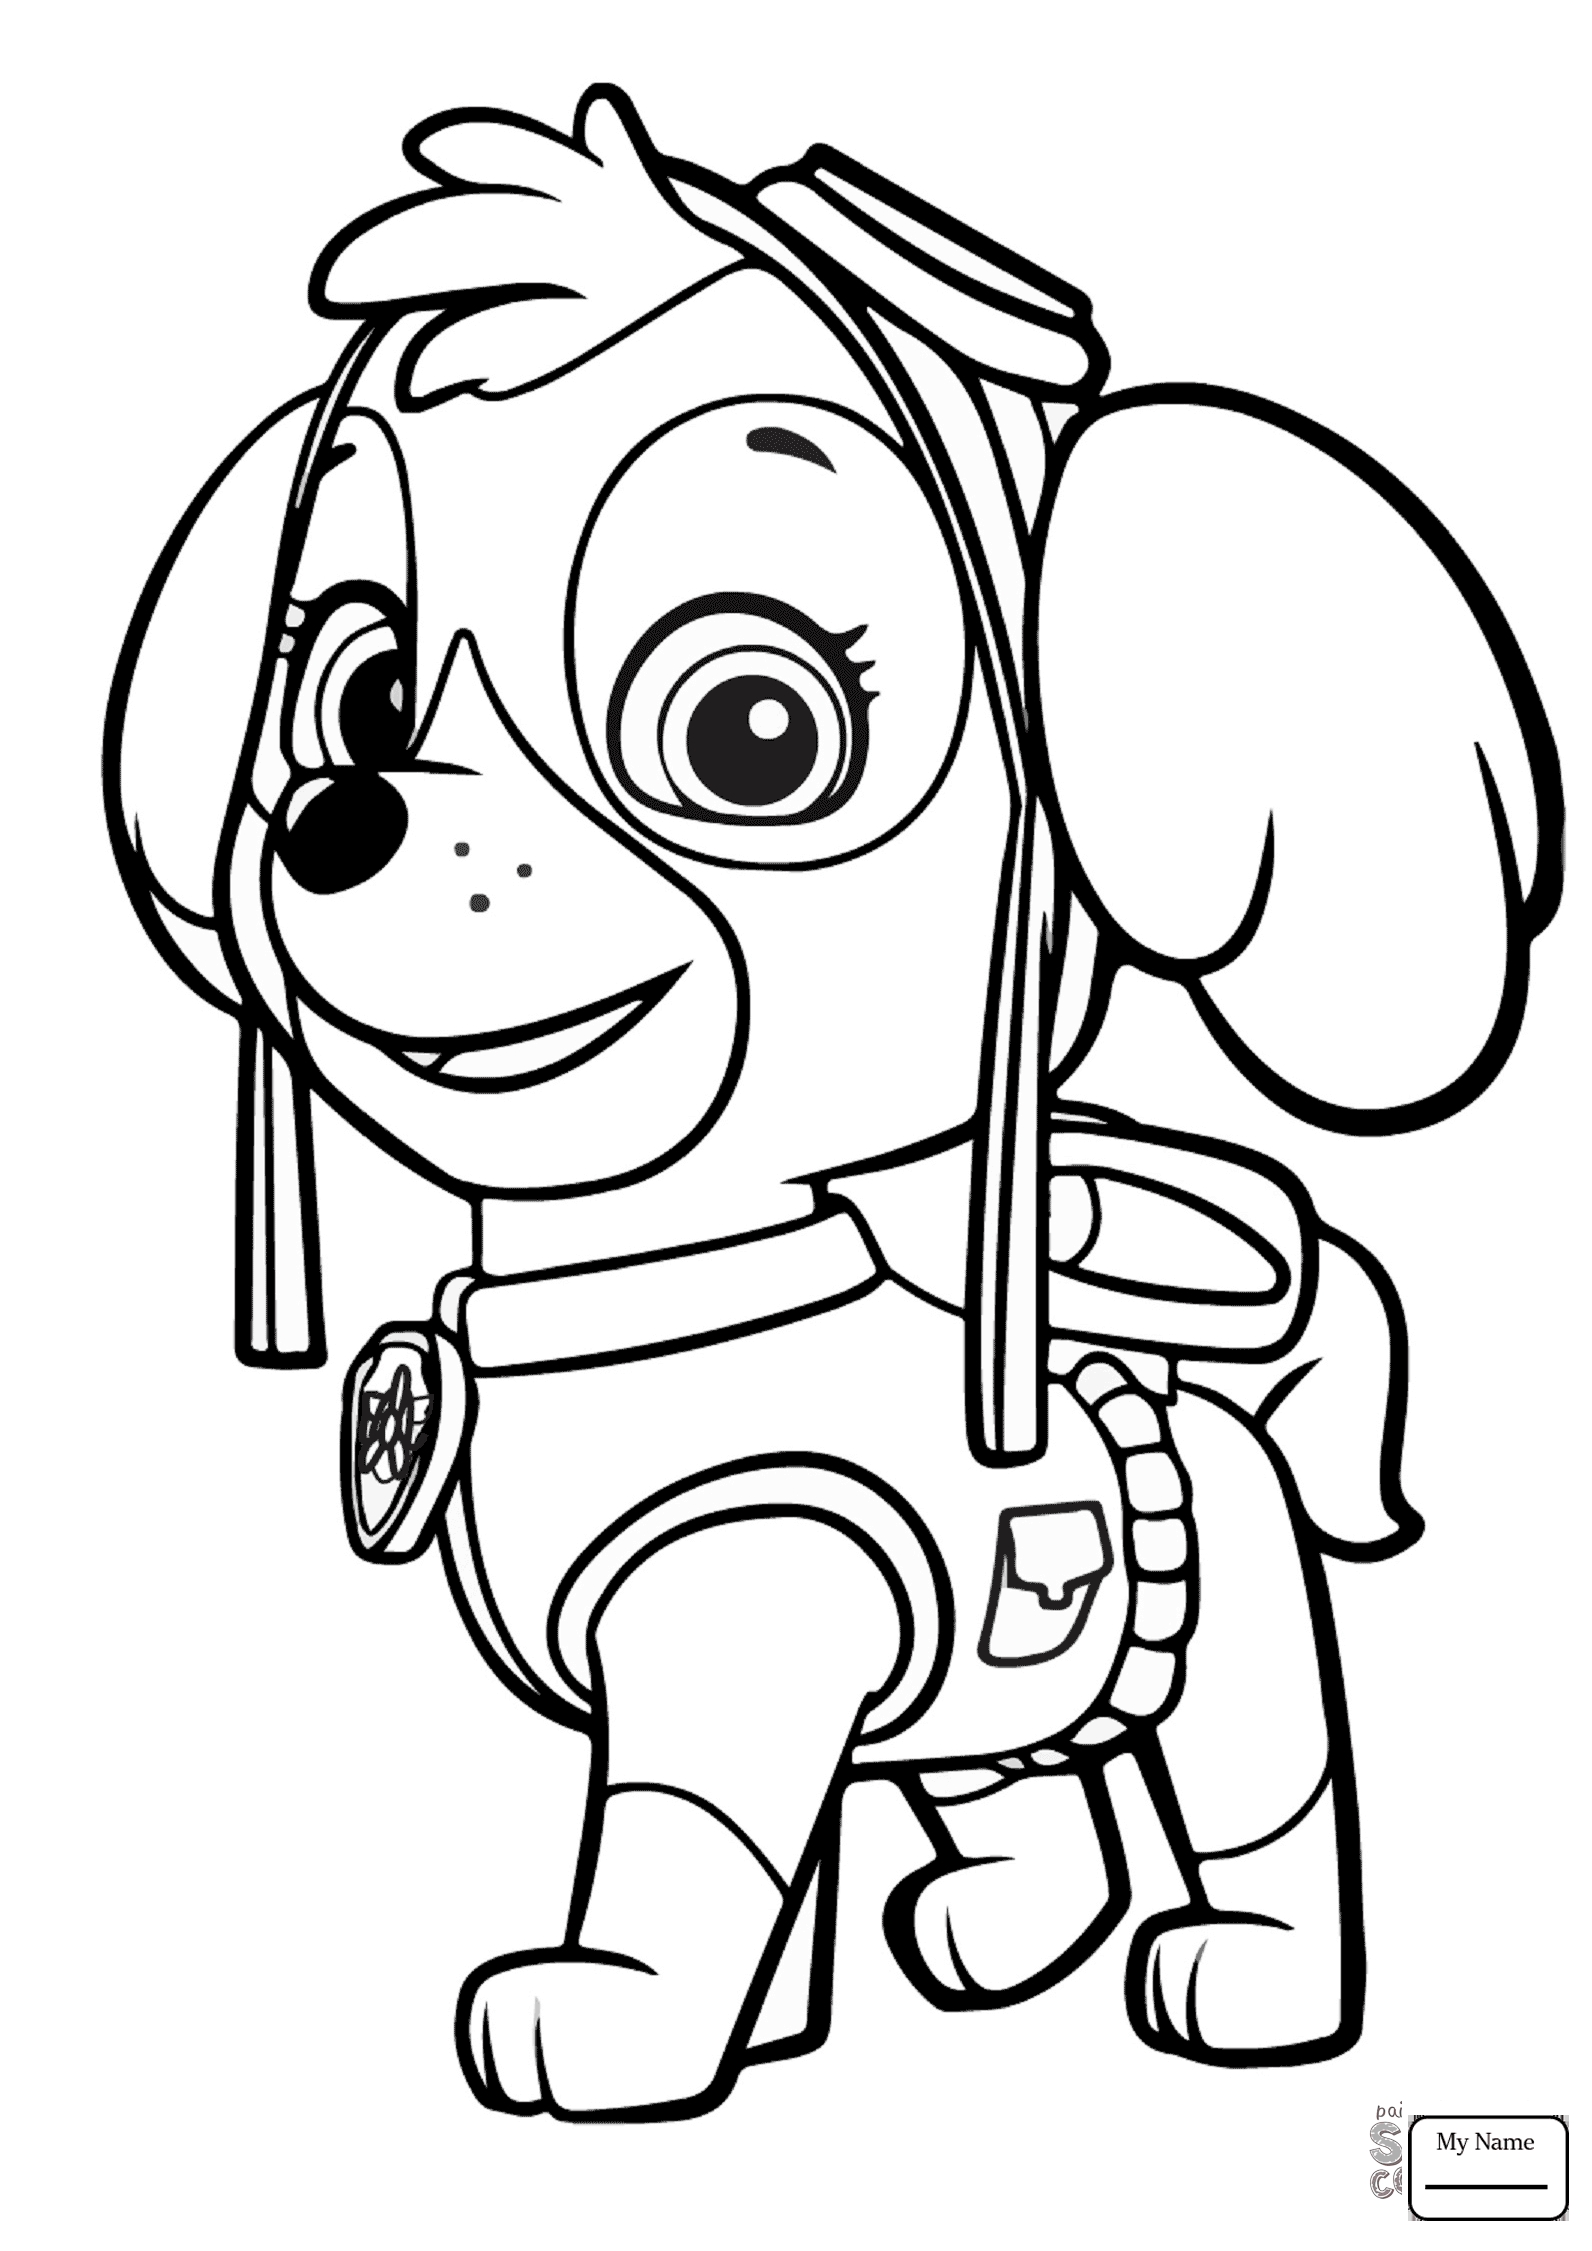 everest paw patrol coloring paw patrol everest coloring page free printable coloring everest patrol coloring paw